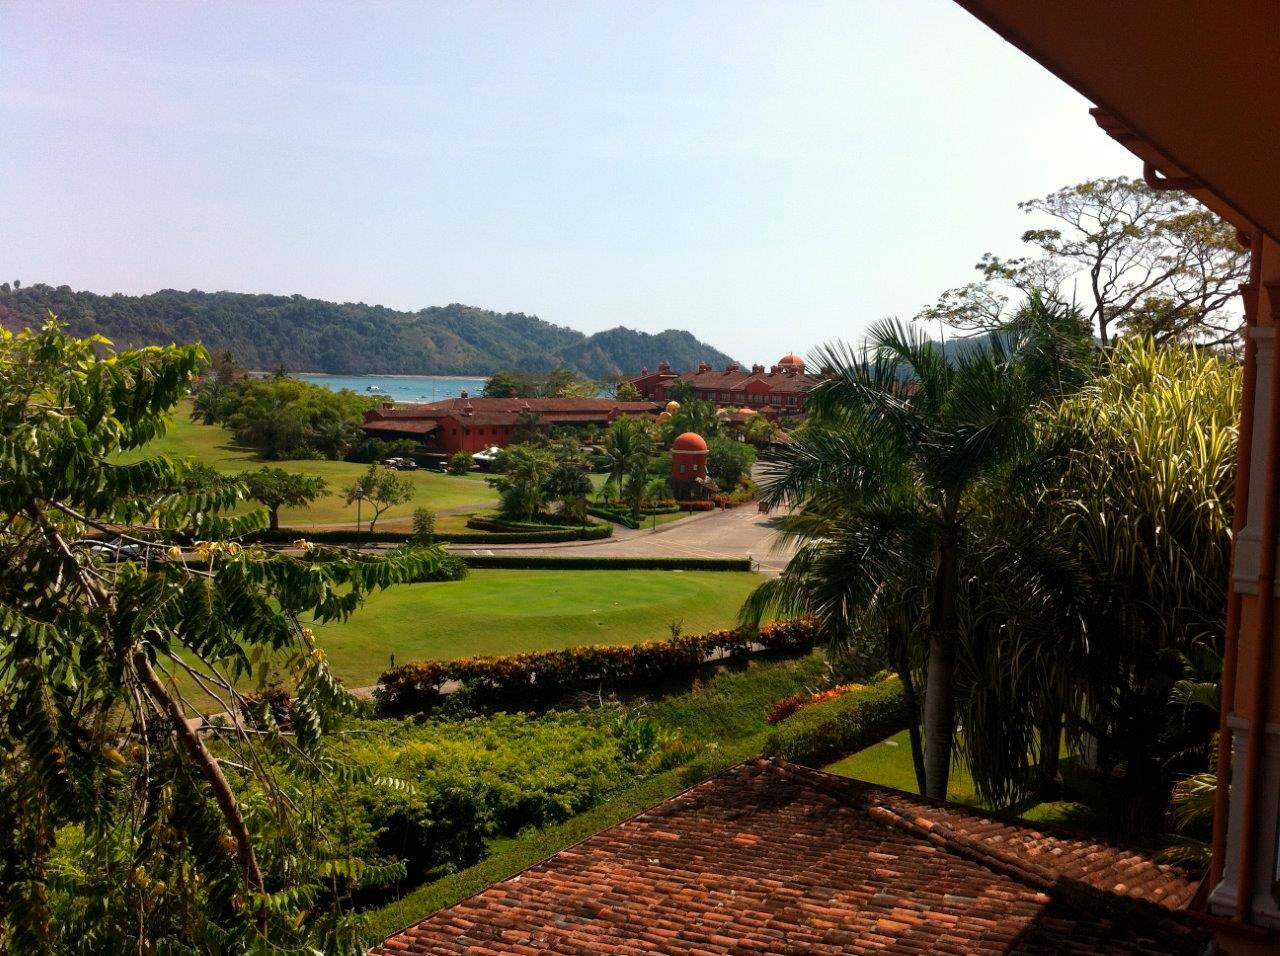 cabin,land,gated,community,nature,fauna,tropical,building, build view,secluded